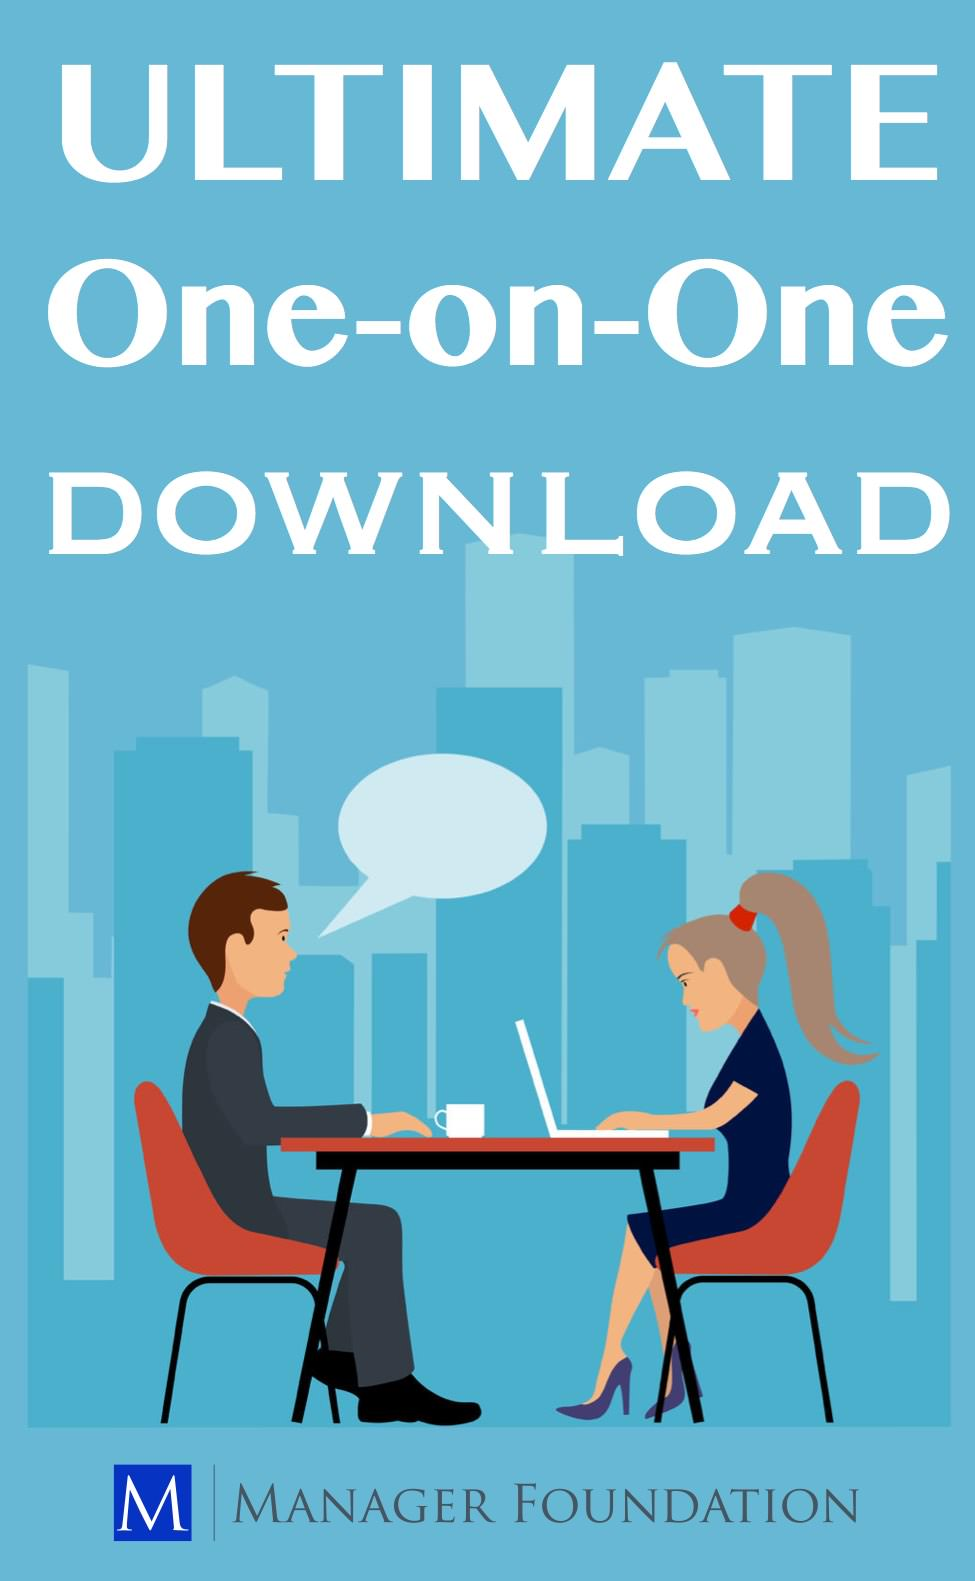 One on one meetings download manager foundation one on one template for download maxwellsz